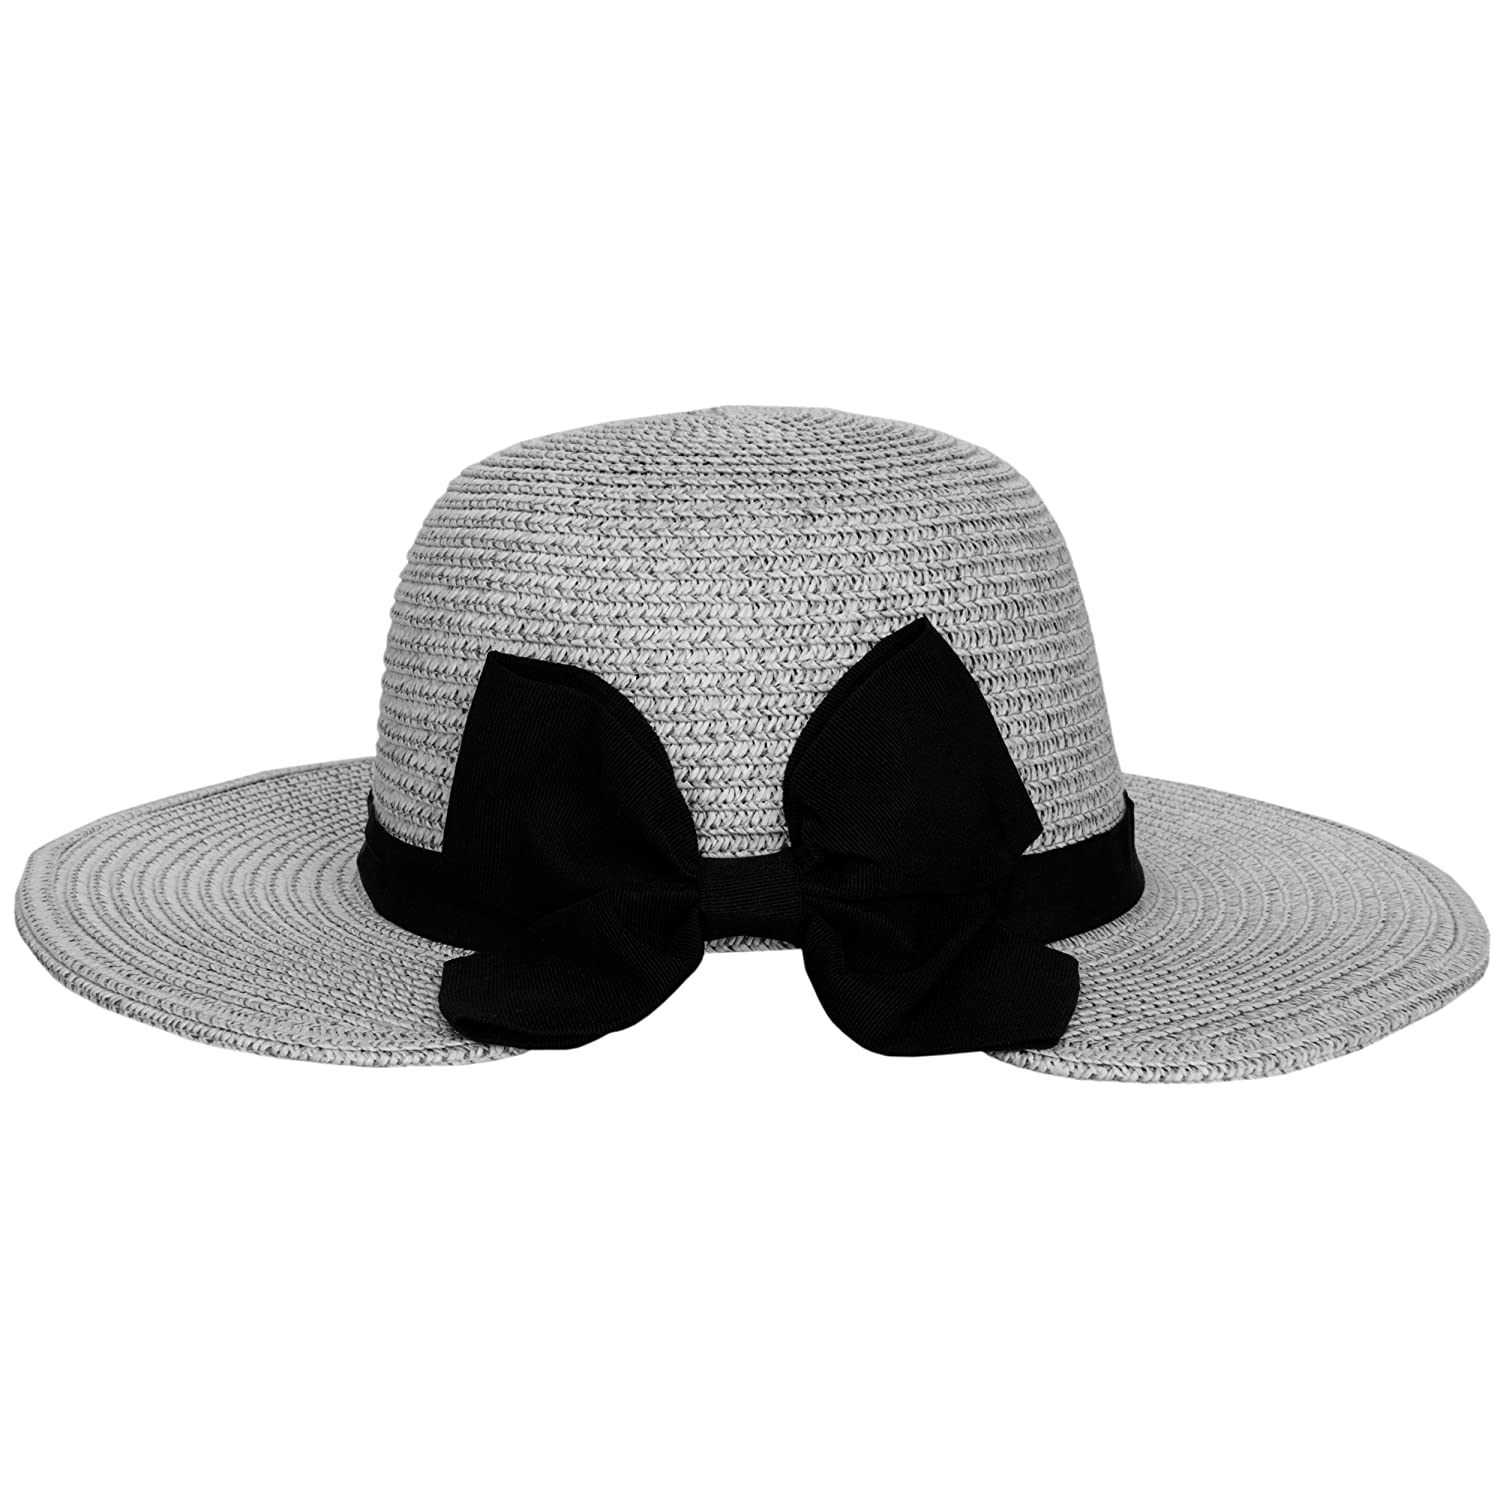 333753d13 Amazon.com: Aerusi Women's (Grey) Mrs. Anderson Straw Hat Floppy ...